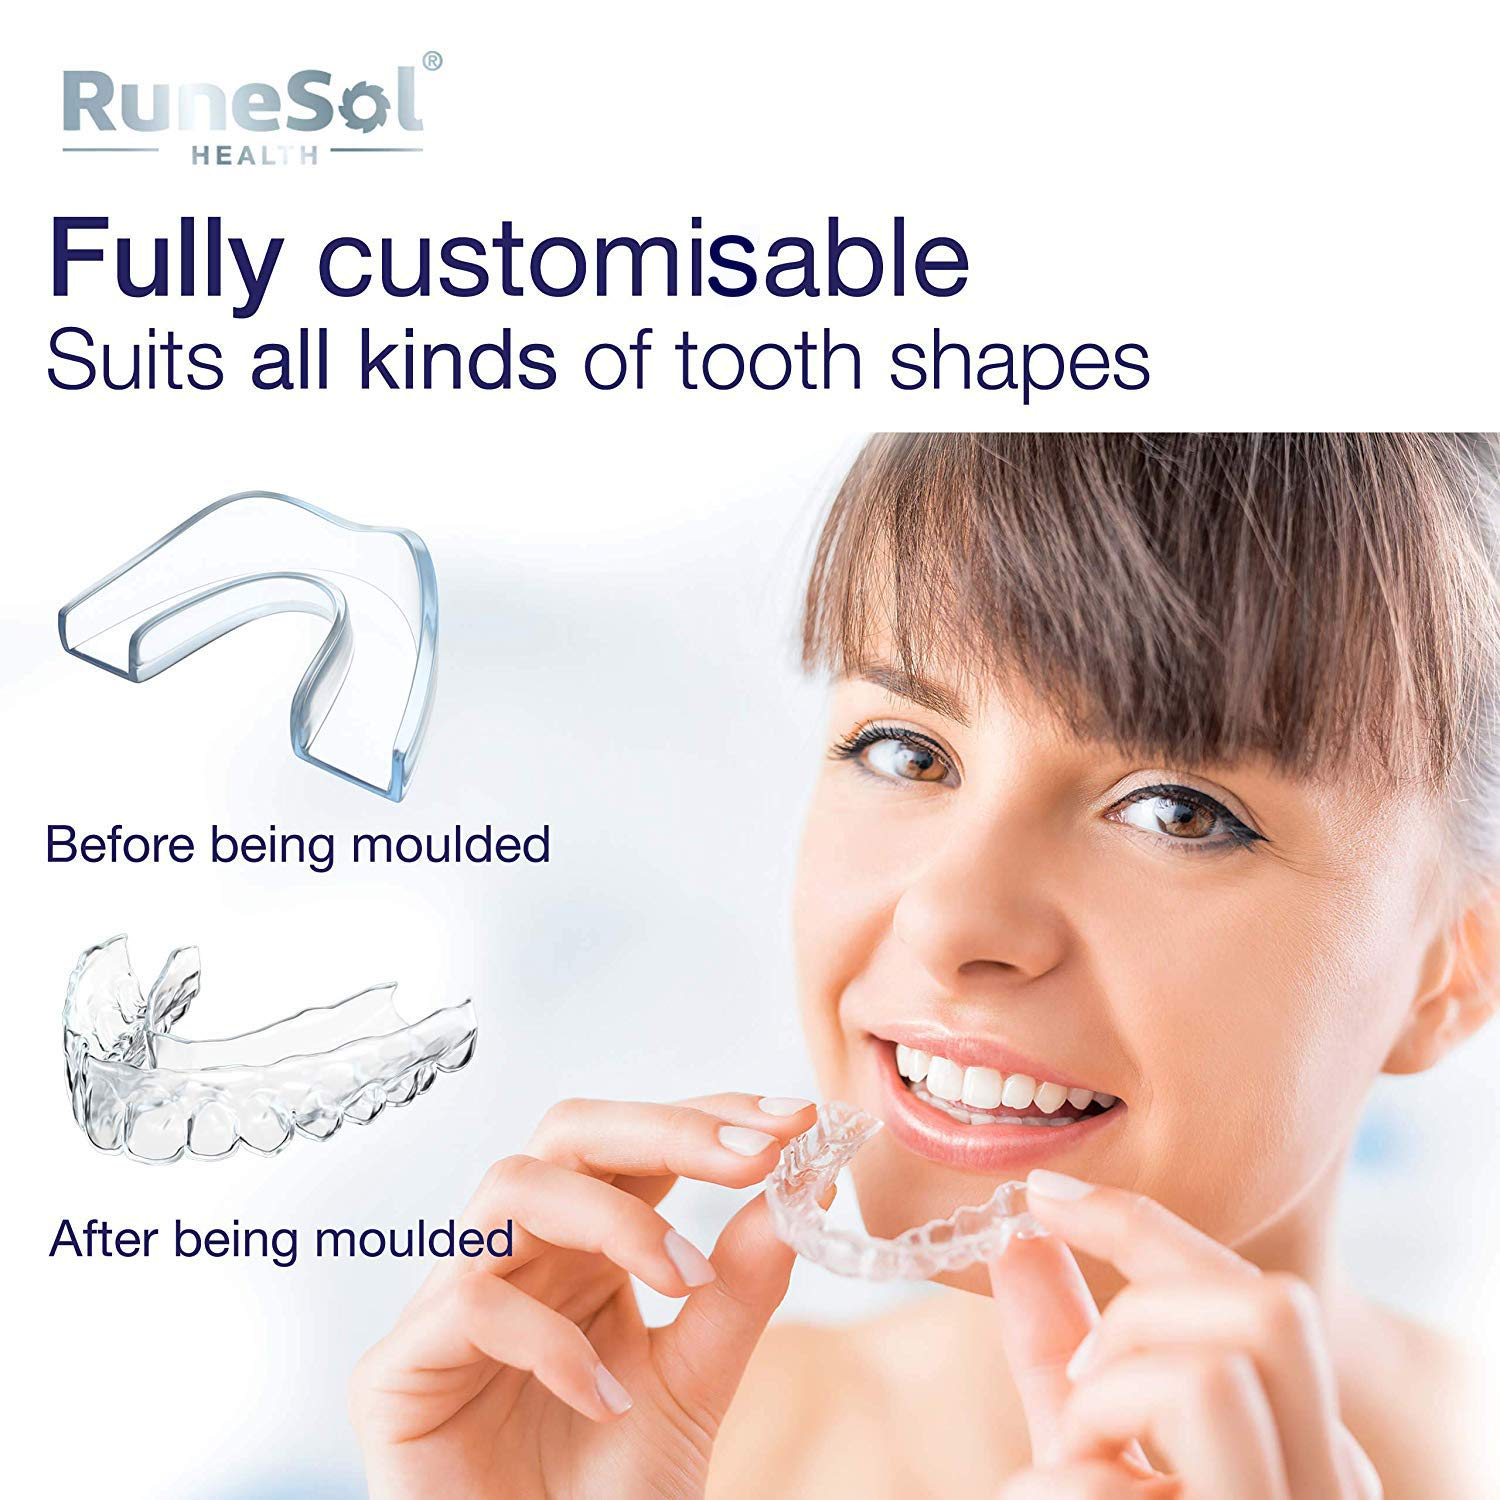 RUNESOL Mouthguard - One Size Fits All Premium Set of 4 BPA Free Mouldable, Customisable and Trimmable Medical Grade Mouth Guard for Grinding Teeth Clenching Bruxism, Sport Athletic, Whitening Tray